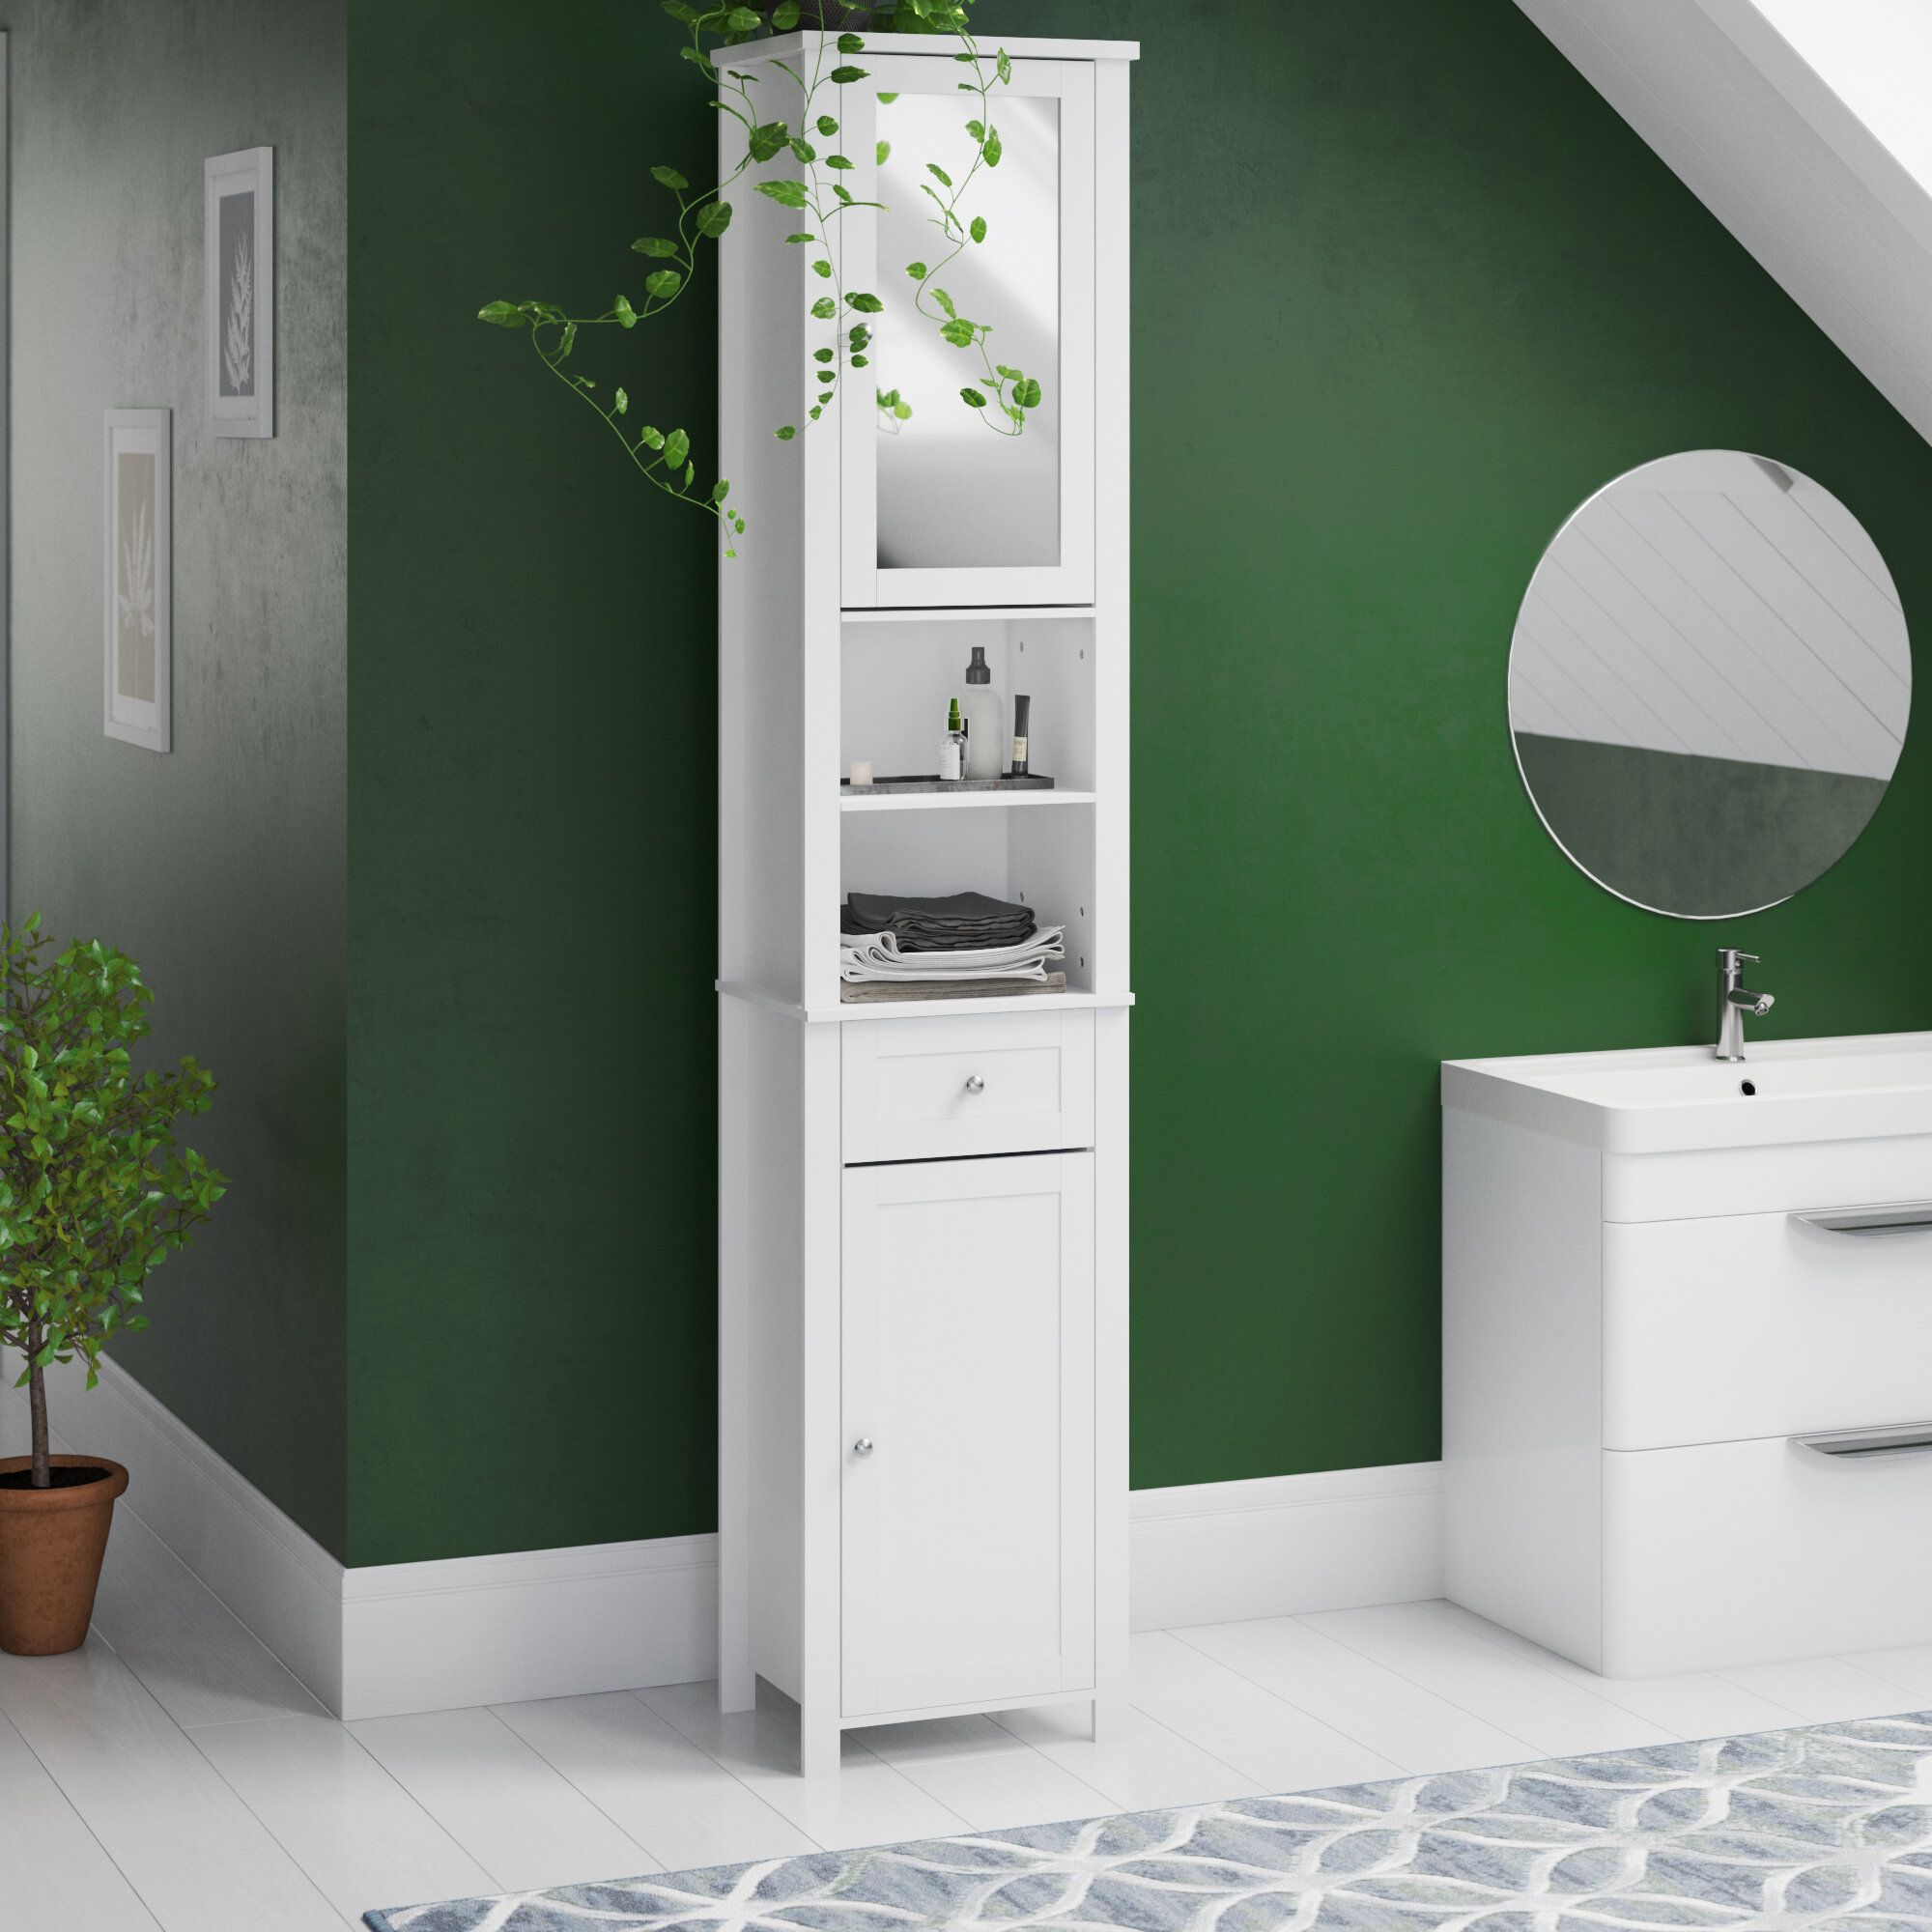 11+ Colorful Free Standing Bathroom Cabinets - Ceplukan  Bathroom